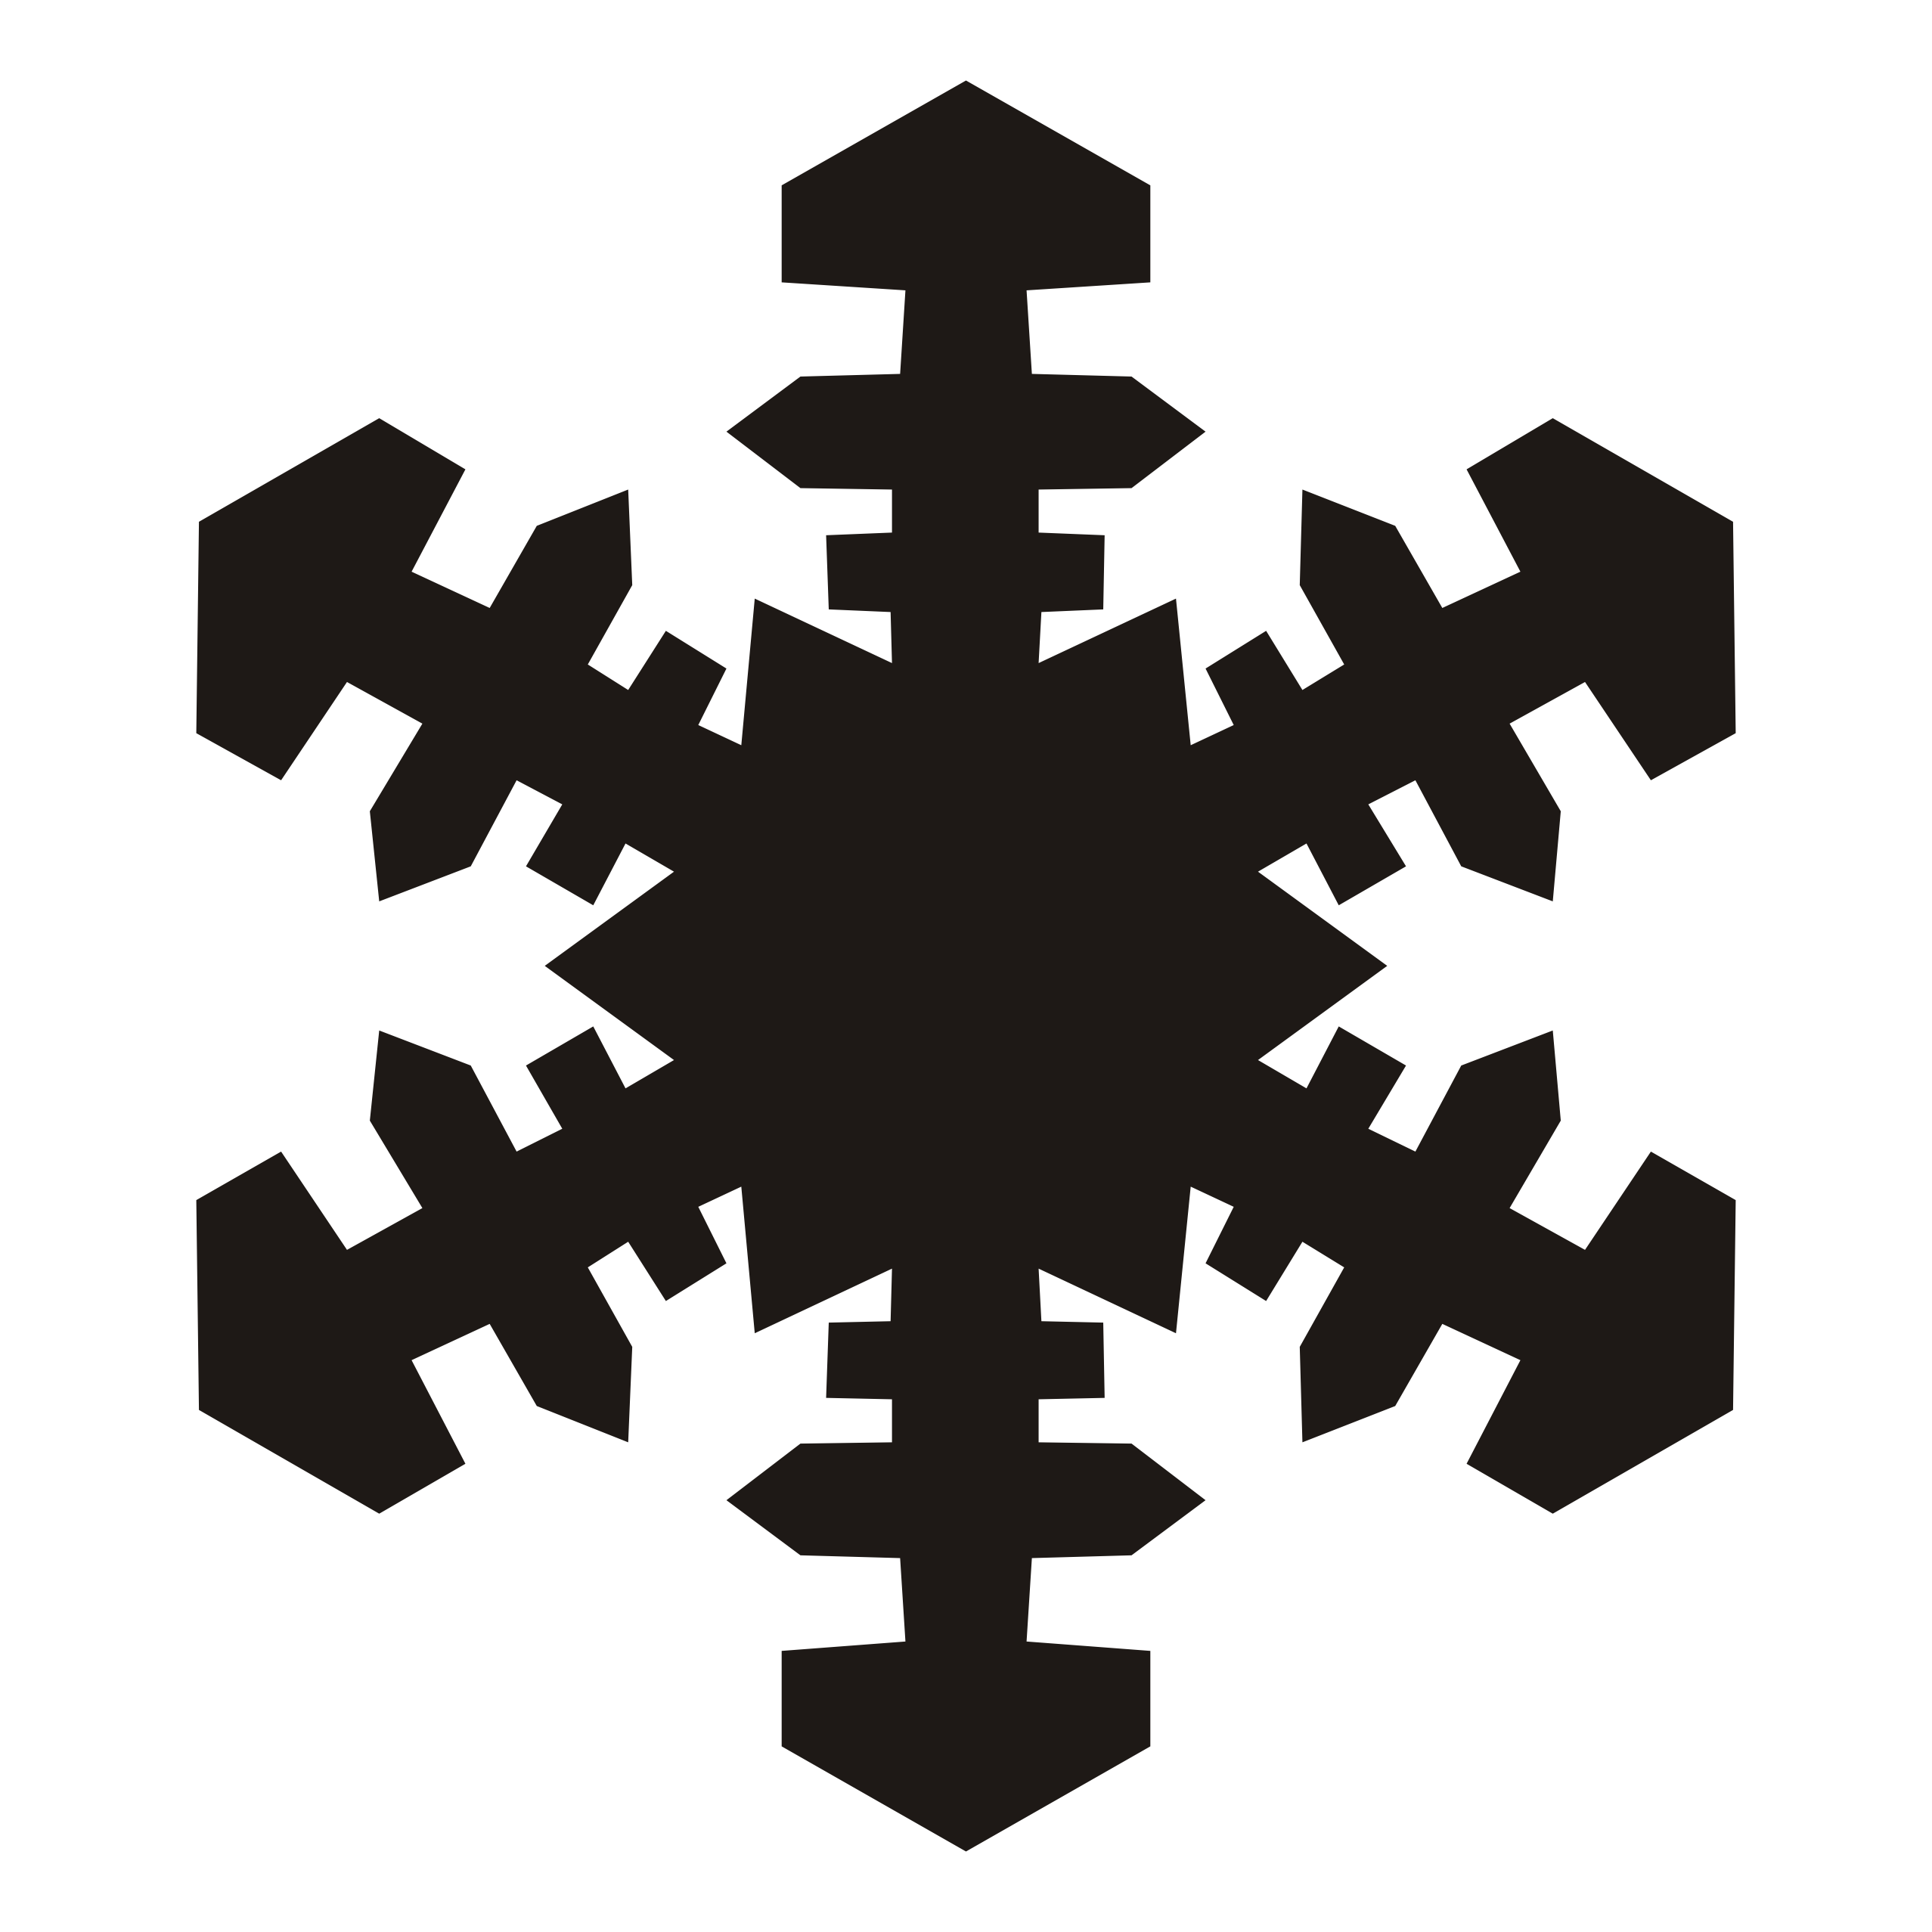 Snowflake clipart black and white border clipart freeuse library Snowflake Cliparts White Free collection | Download and share ... clipart freeuse library